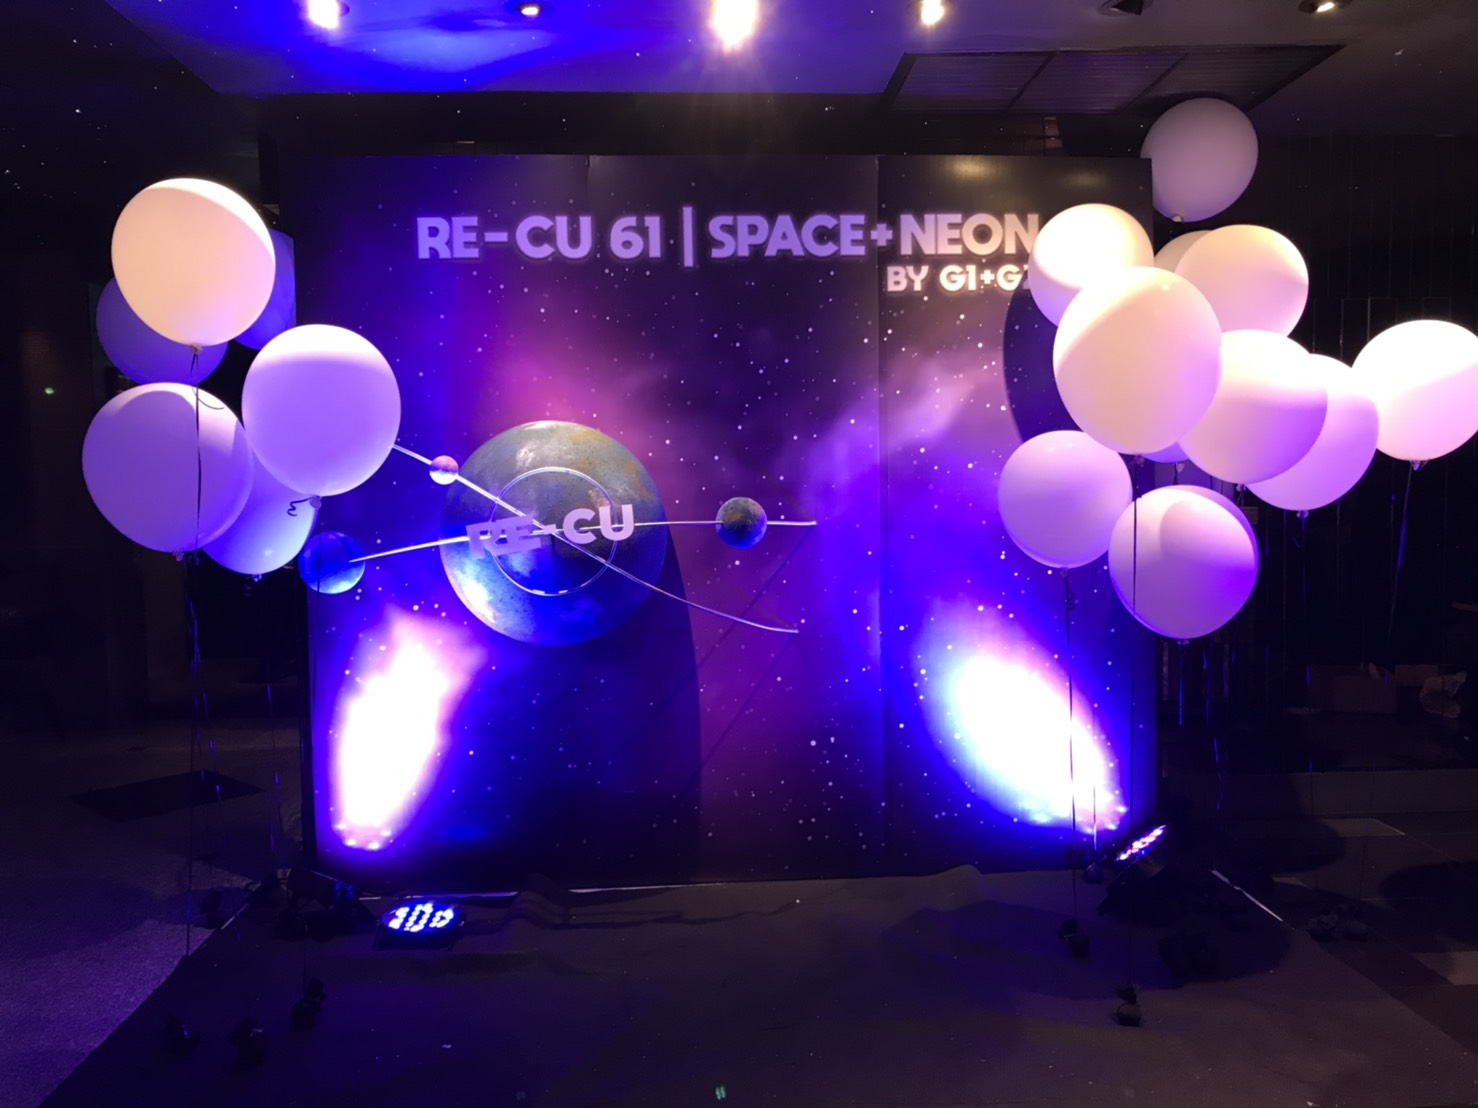 Party design and backdrop design in Space theme - we provide decorations, balloons, catering, light and sounds, entertainments